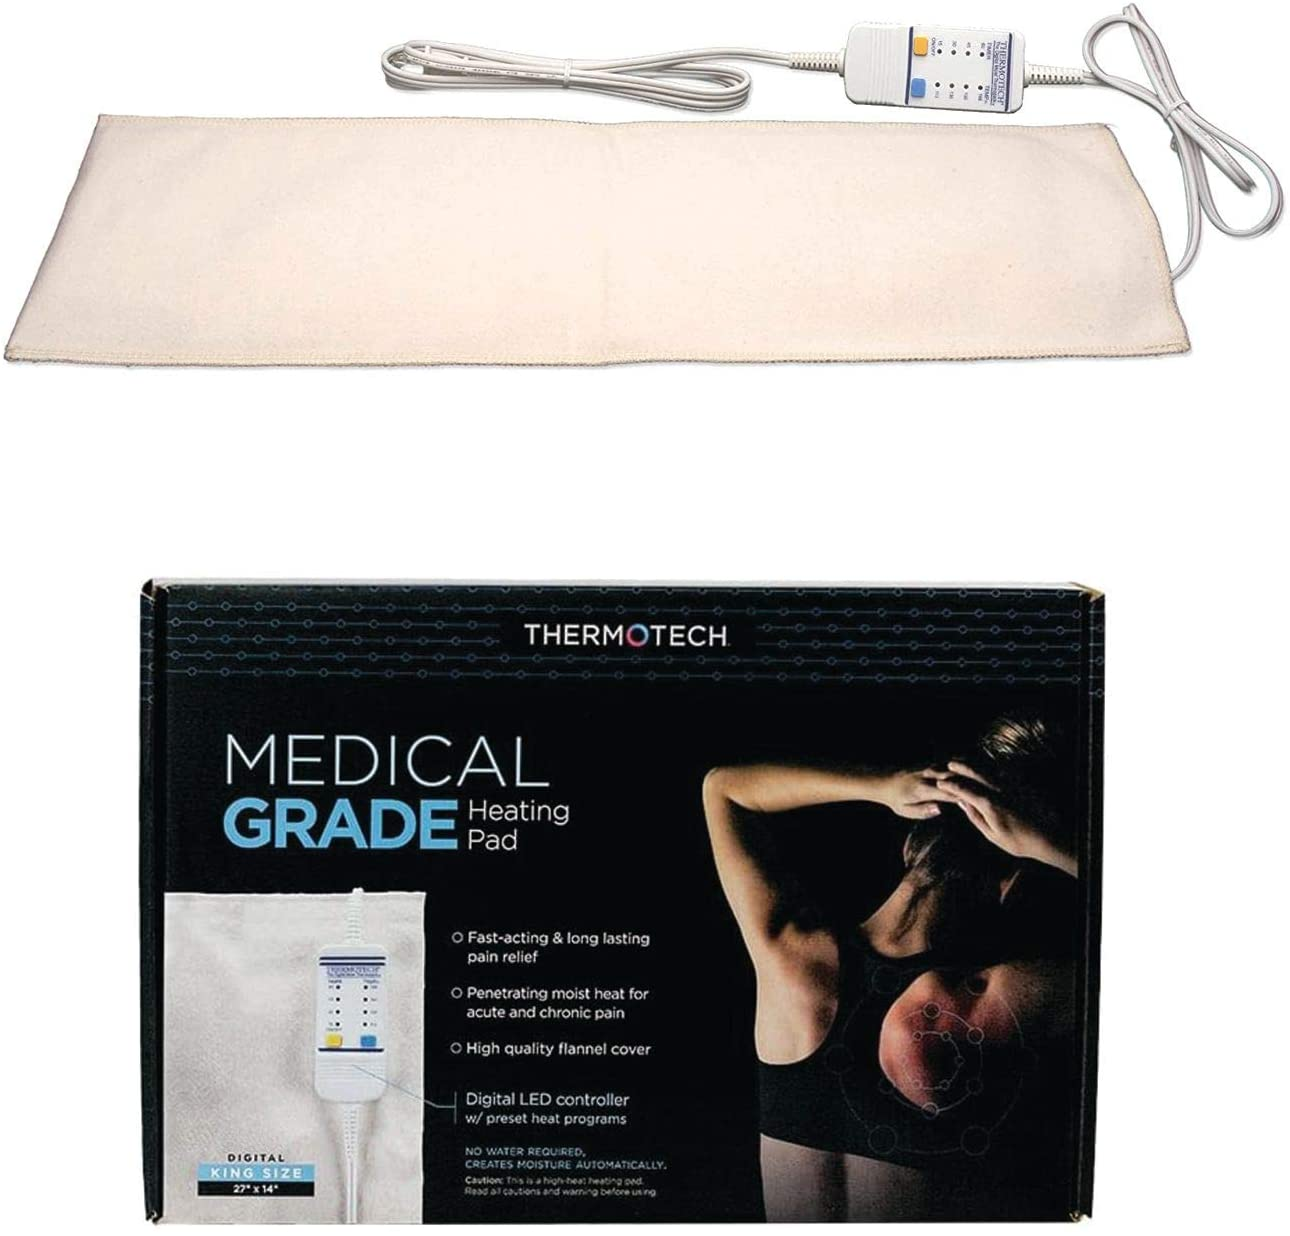 Medical Grade Heating pad with Automatic Moist Heat by Thermotech, High Heat Heating pad for Back Pain and Cramps - Extra Large King Digital - 26